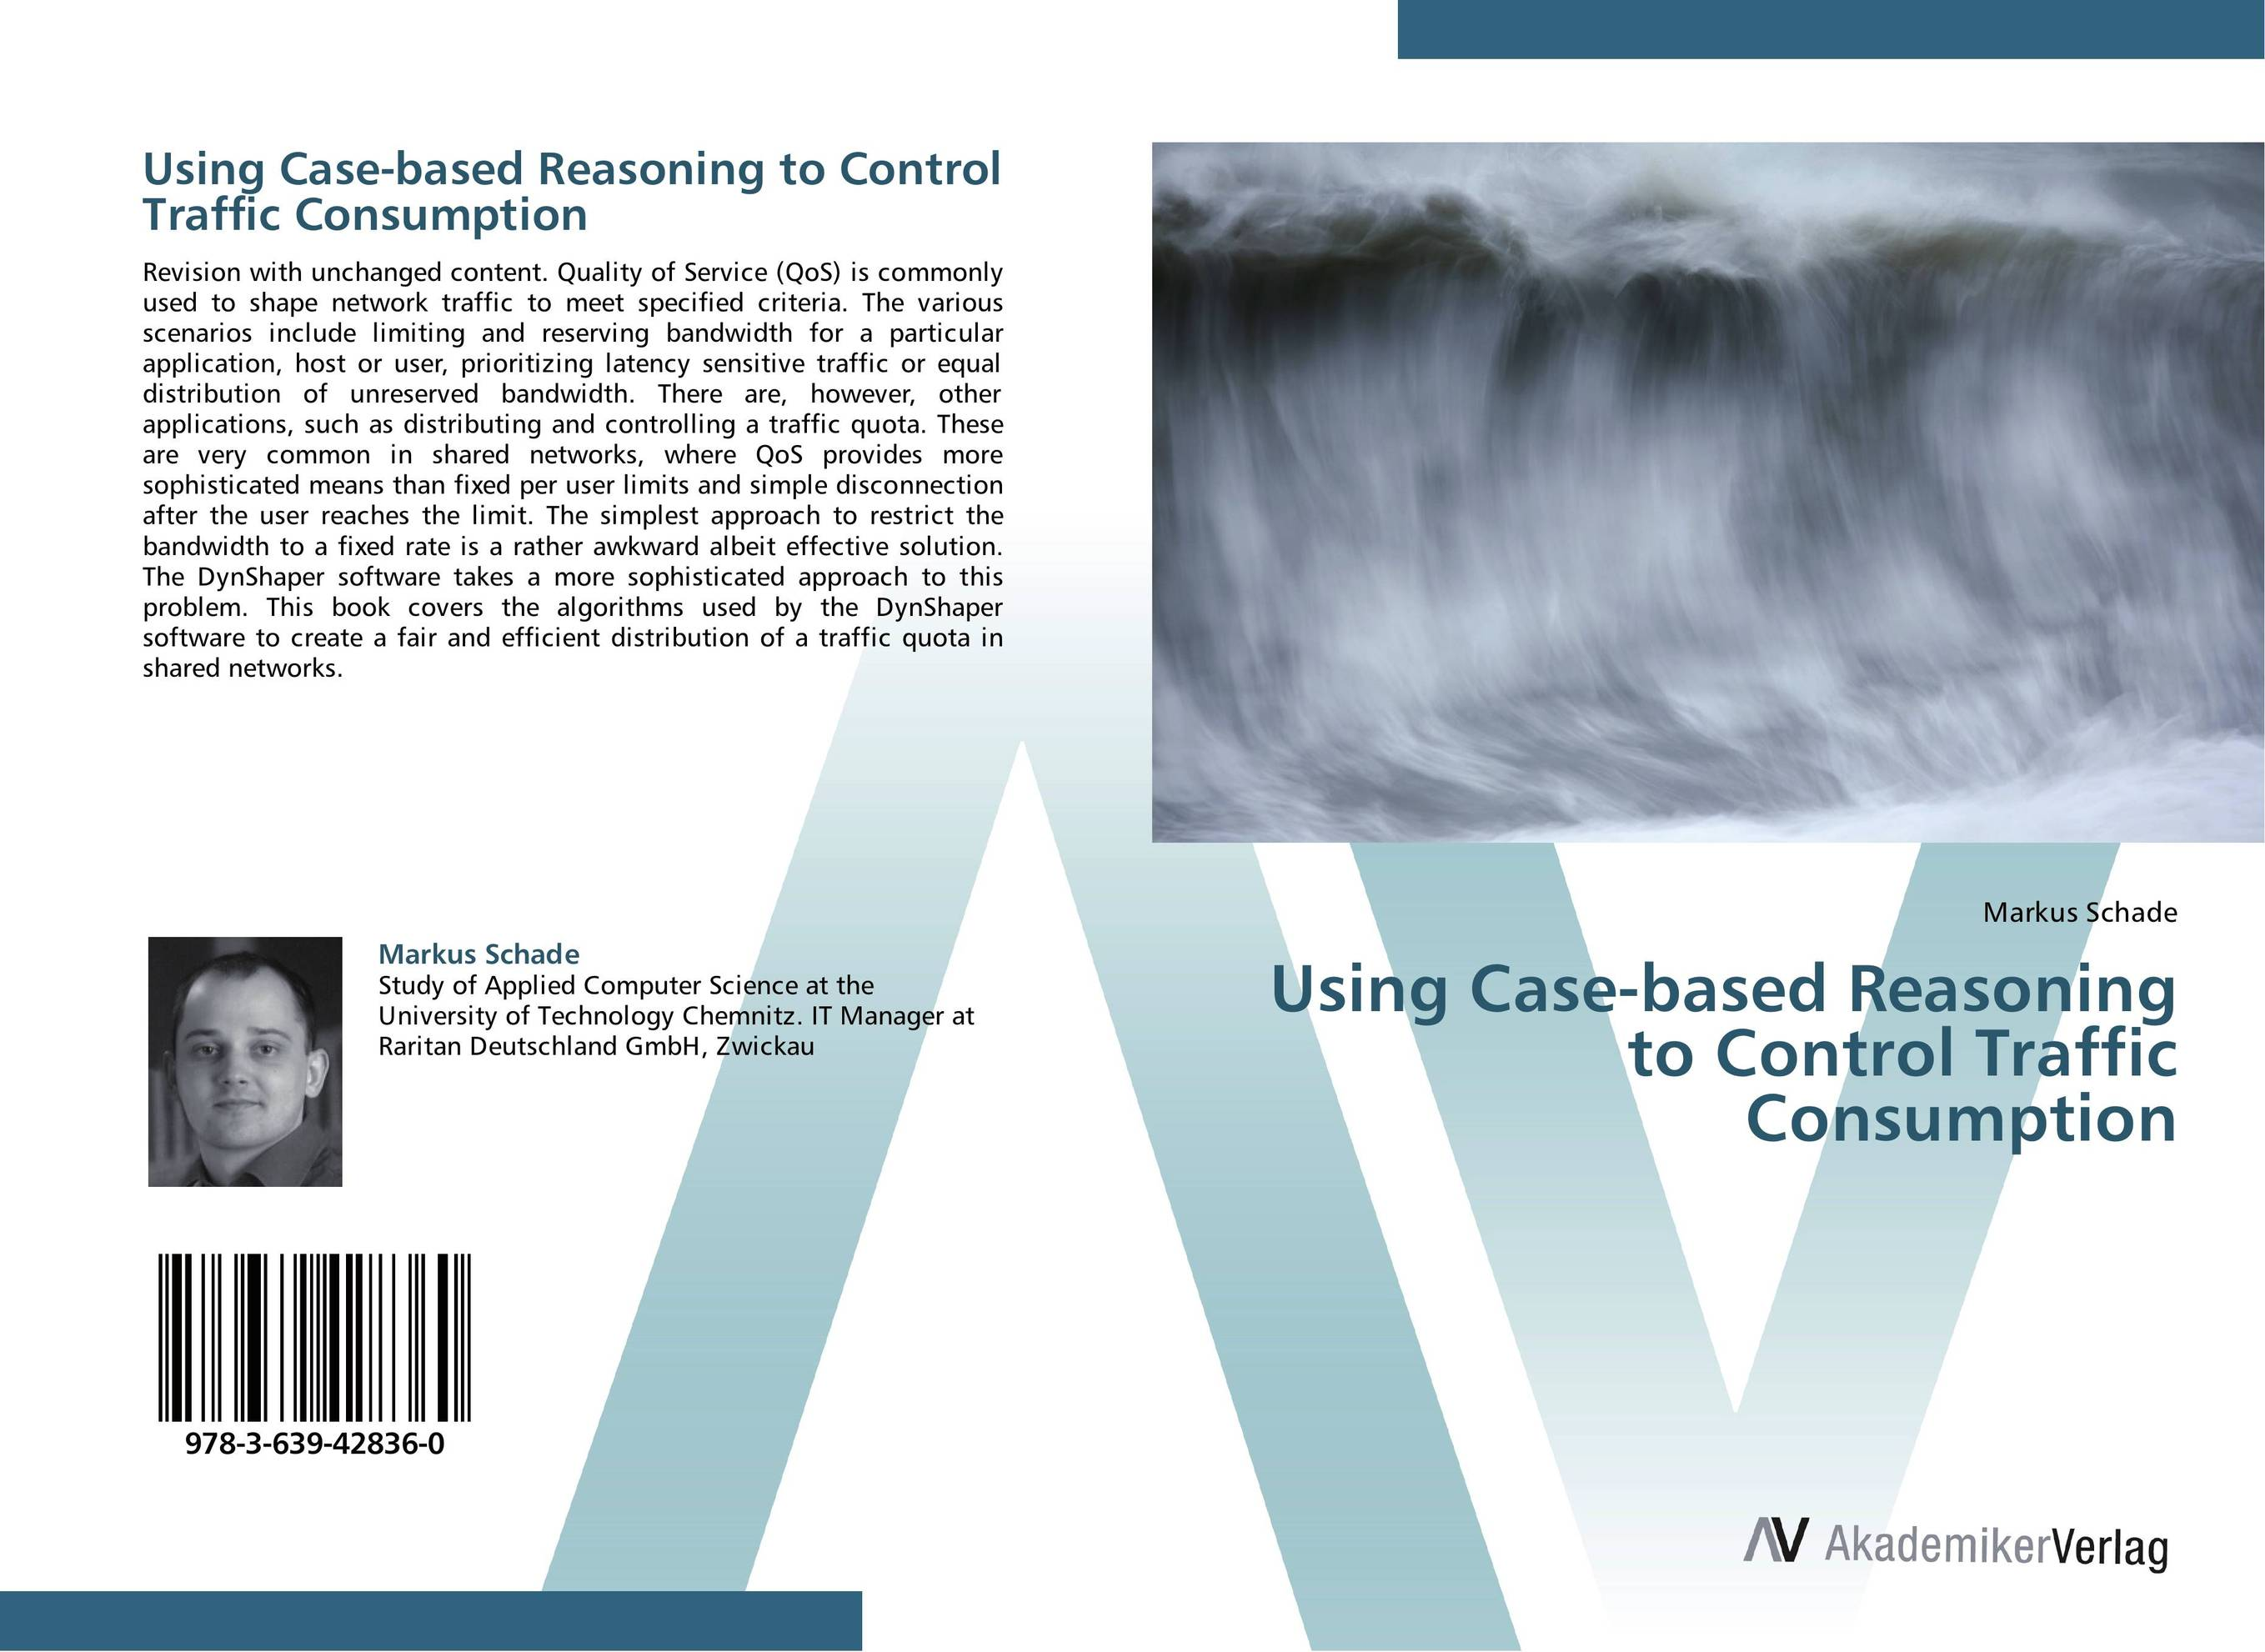 Using Case-based Reasoning to Control Traffic Consumption